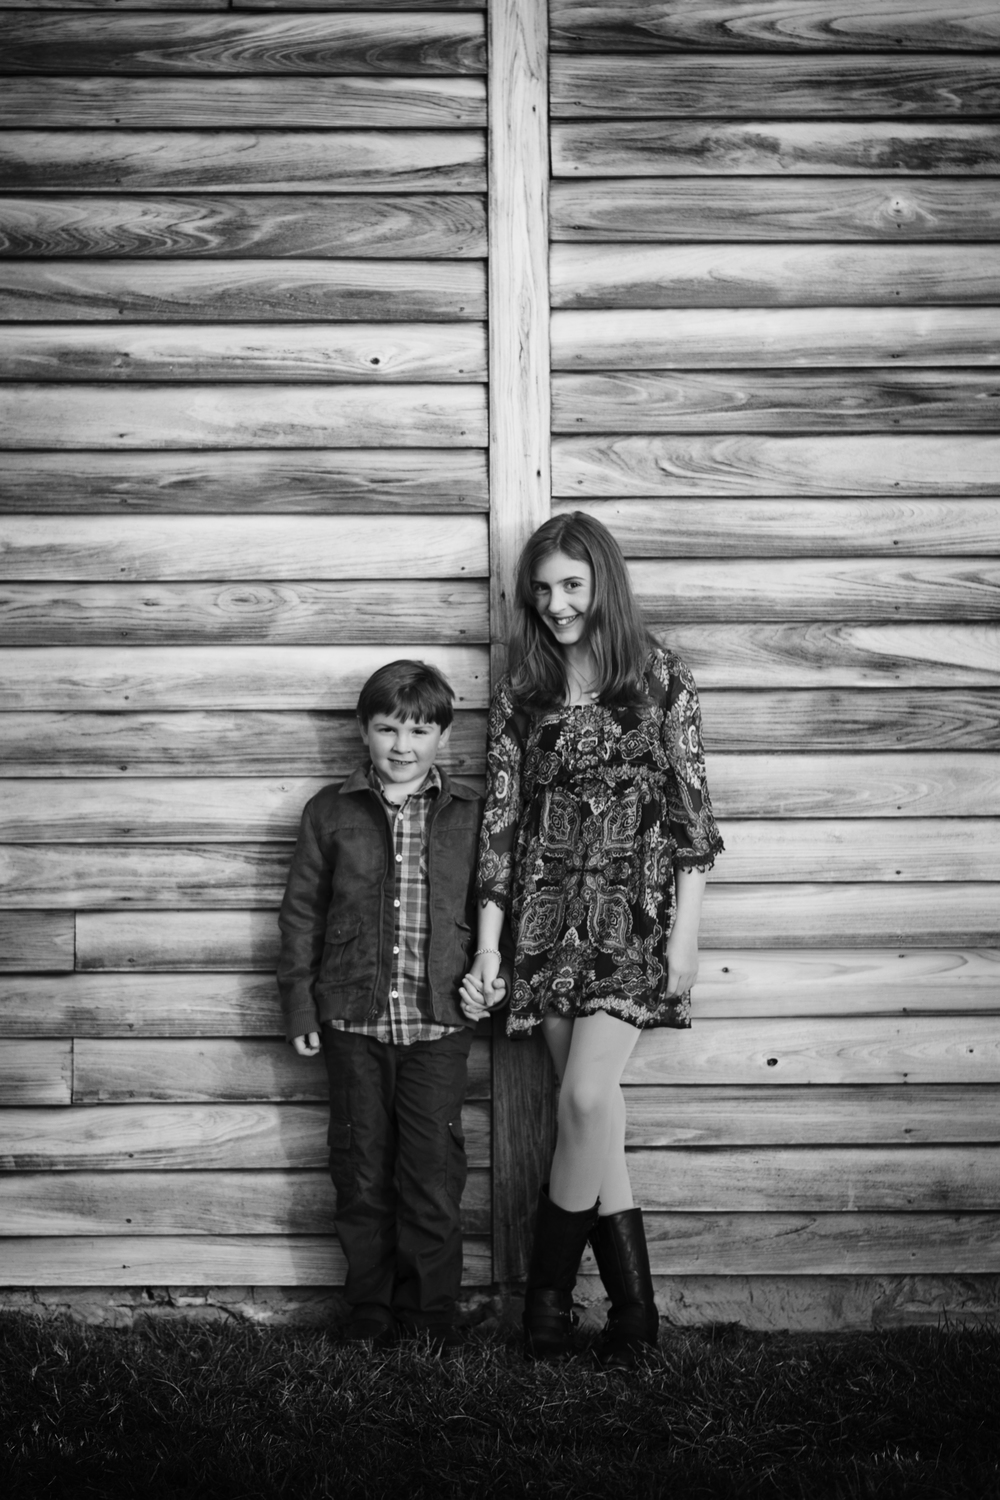 Siblings in front of barn childrens black and white photography Kate Montaner